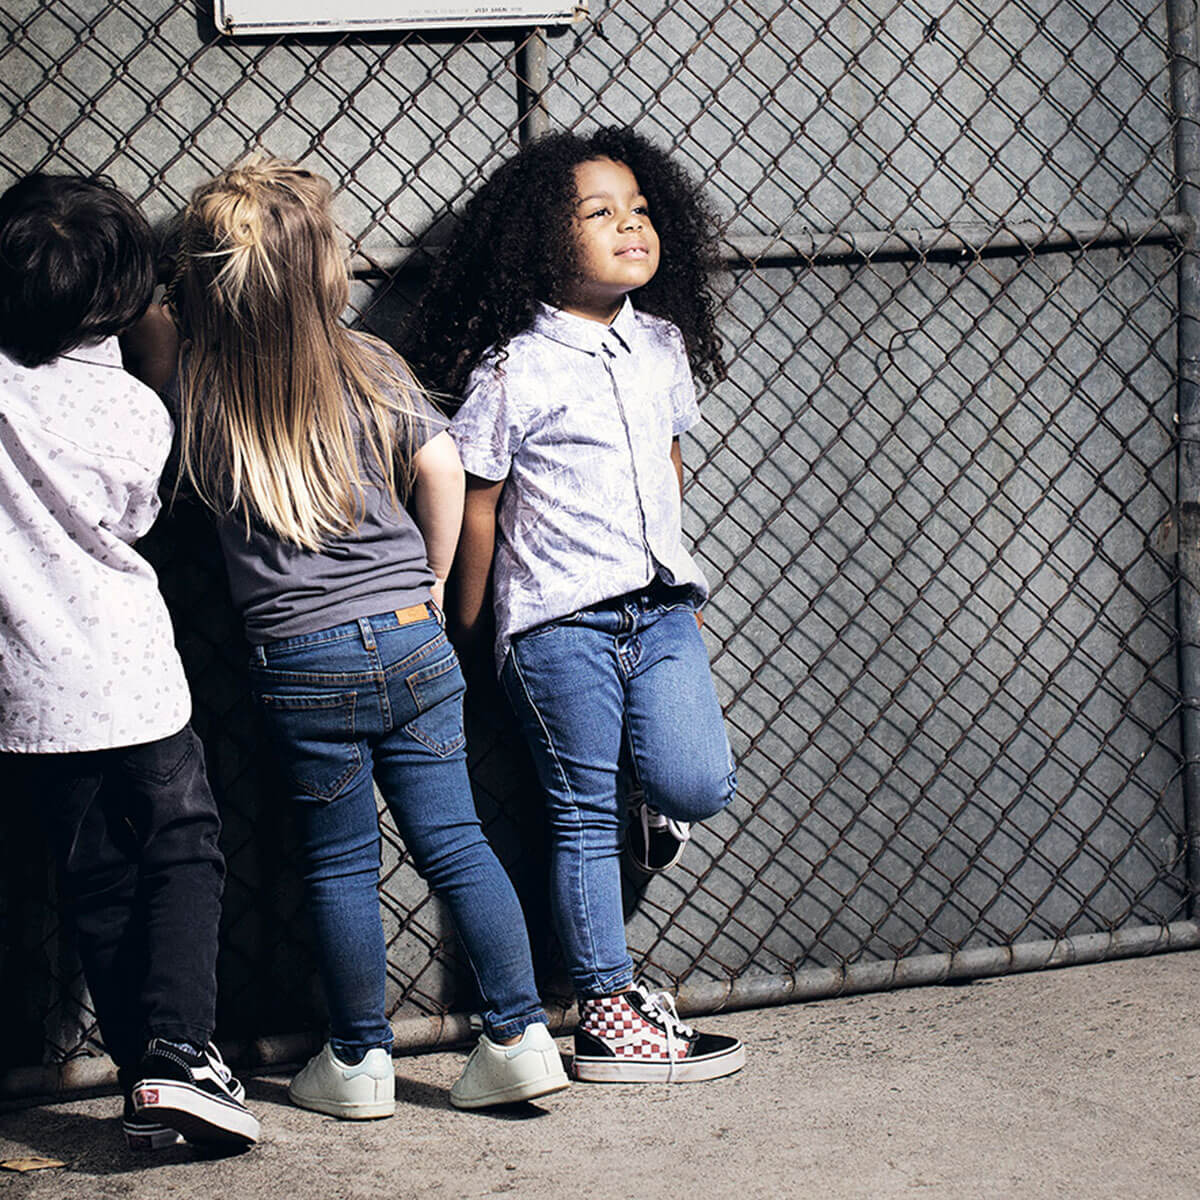 Days of Denim - Kids Skinny Jeans - Classic / Denim Wash - Lifestyle 4